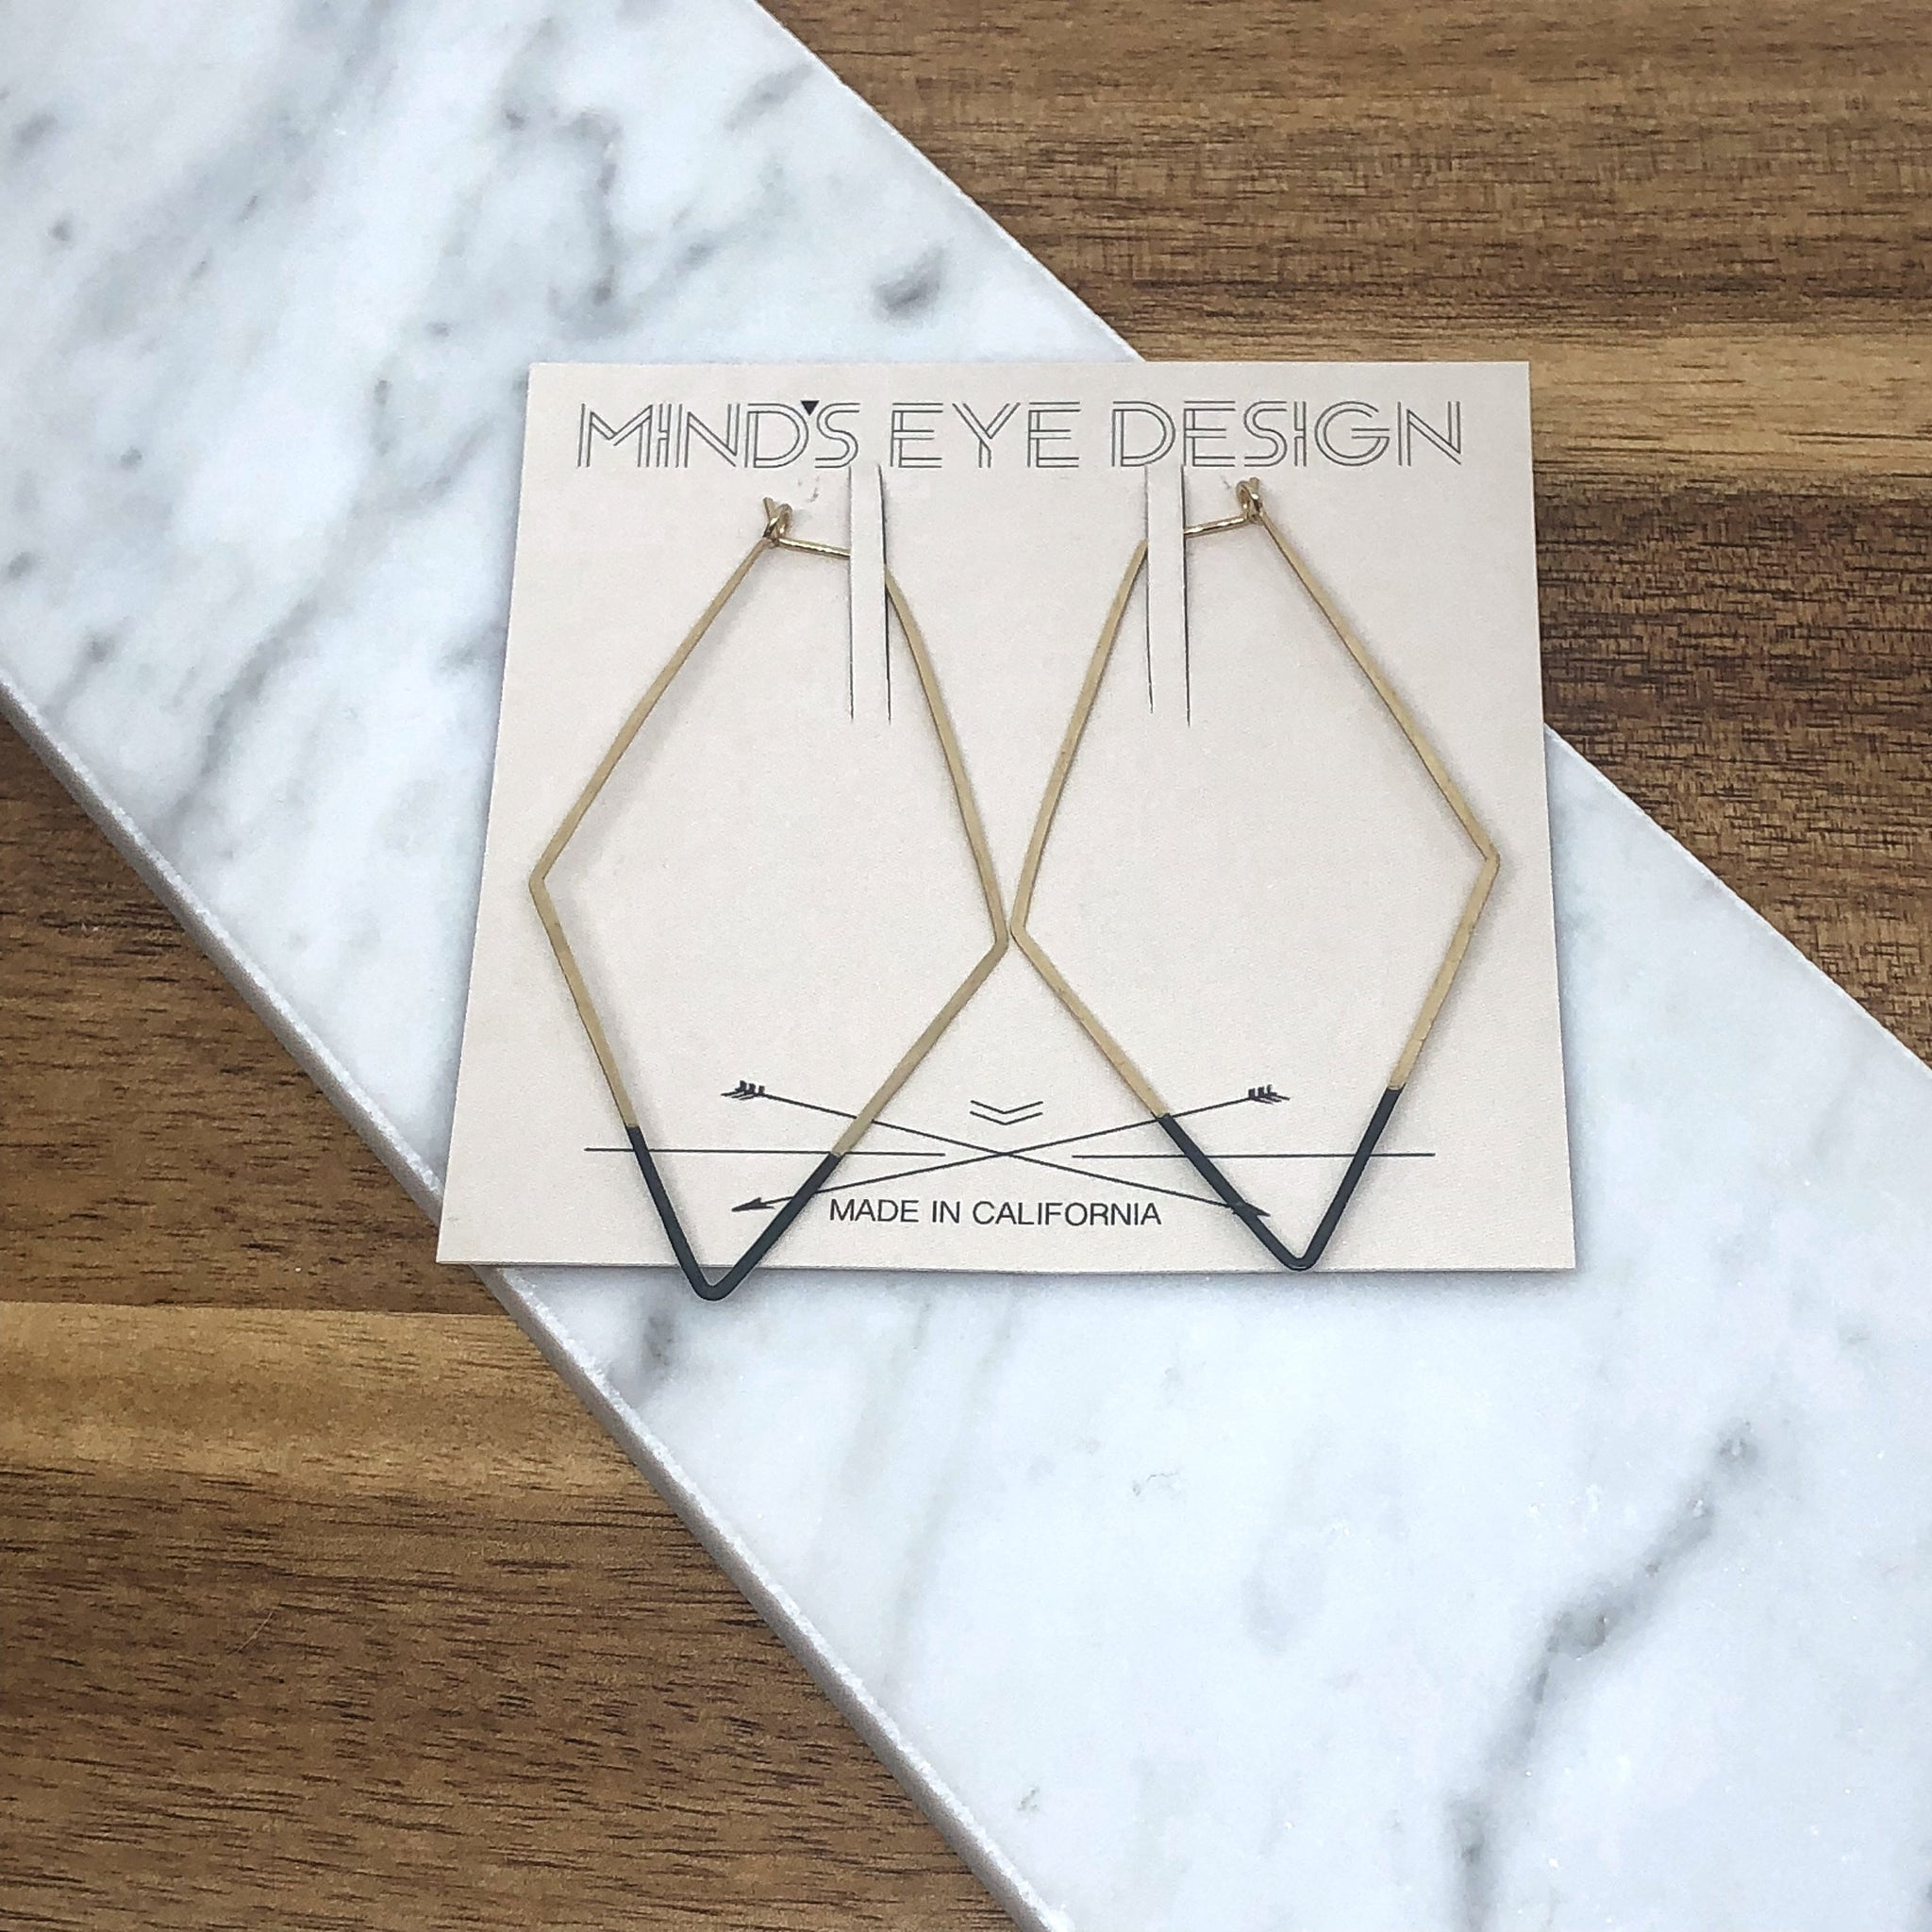 Mind's Eye Design - Mired Metal Earring - Rhombus